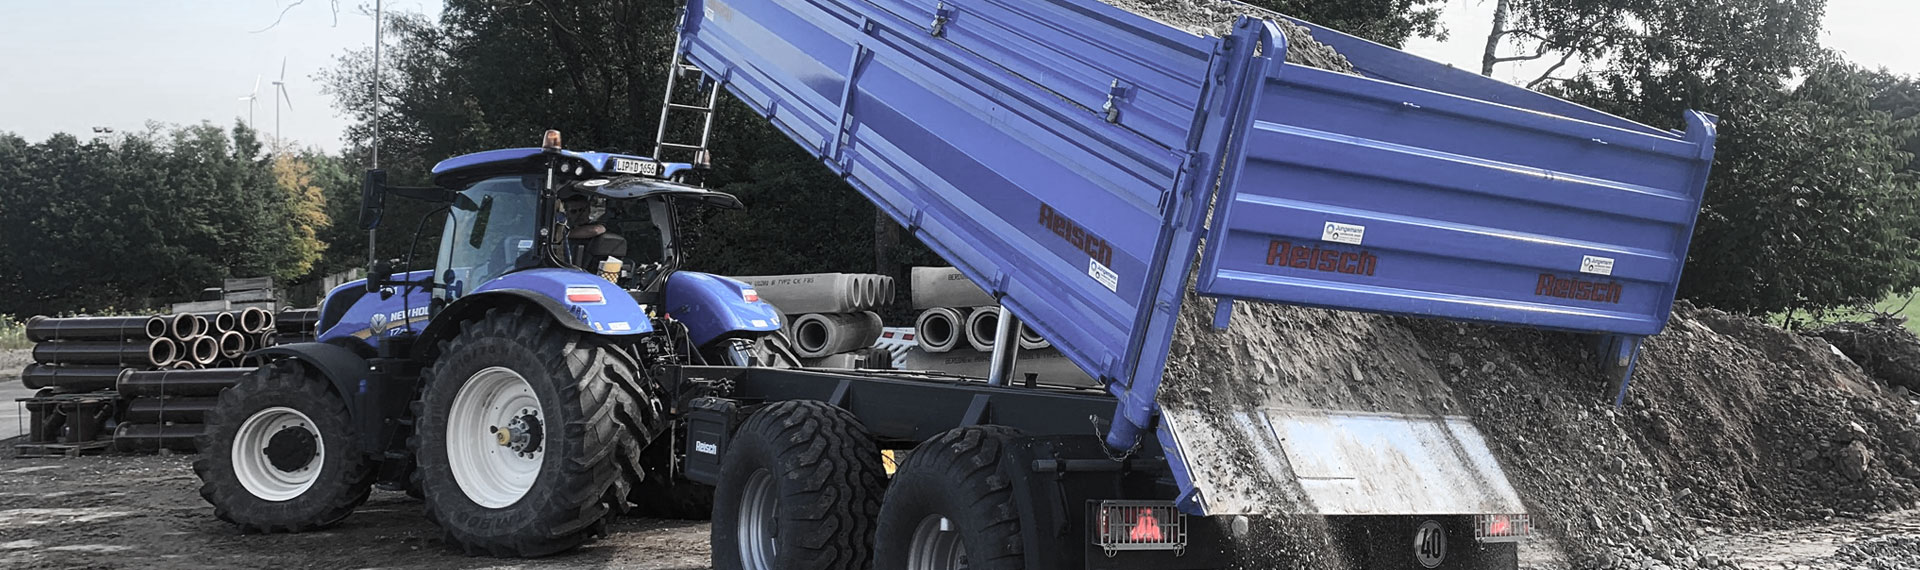 A blue tipper truck with body built in Hardox® sheet steel, dumping out a load of rocks.